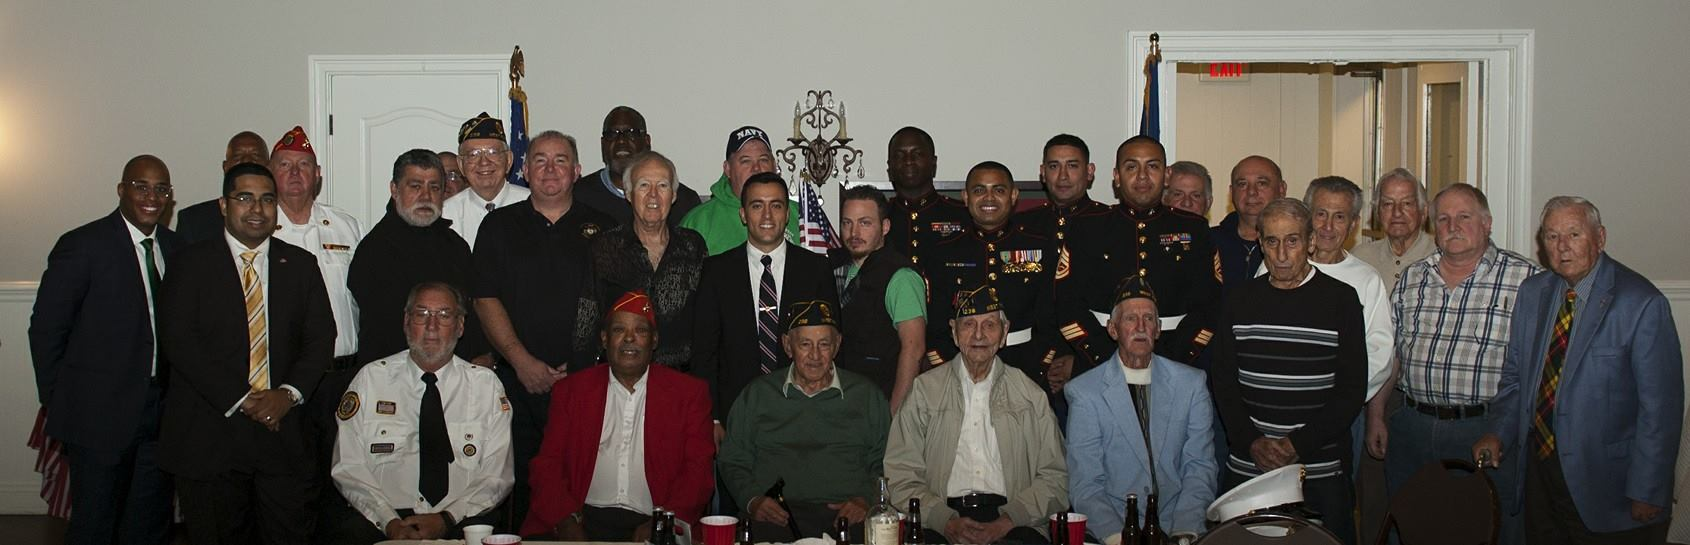 Annual Veteran's Day Celebration at the Legion -November 11th 2014 -The tradition continues